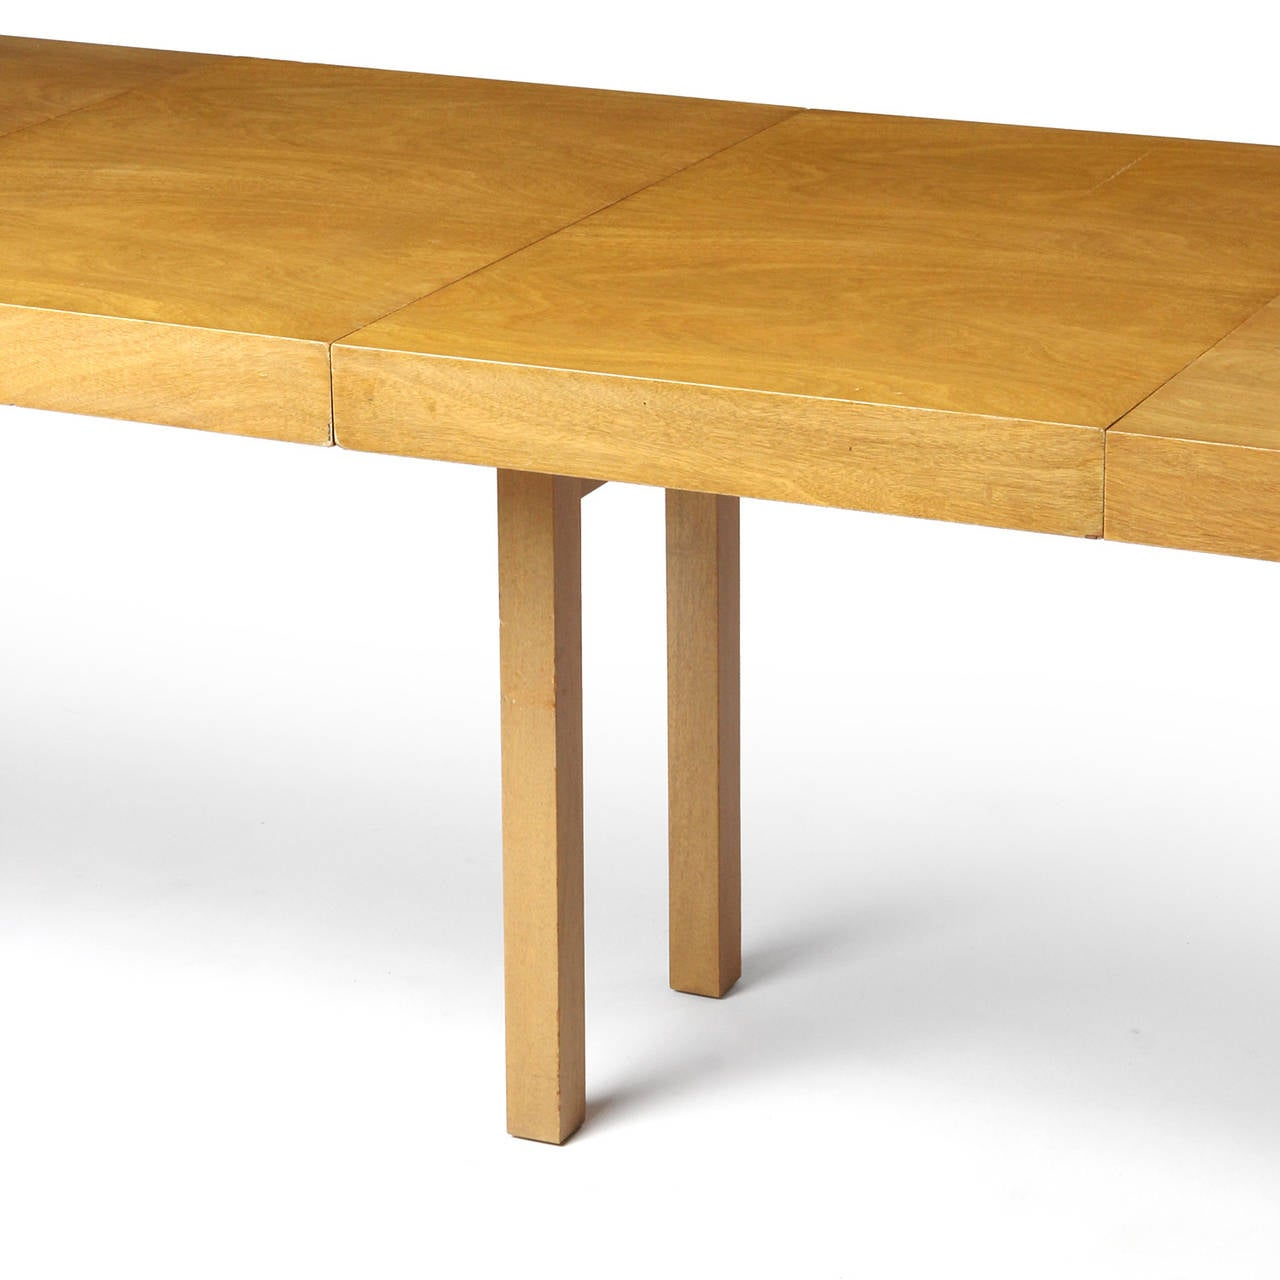 Minimalist Dining Table by Edward Wormley For Sale at 1stdibs : 4l from www.1stdibs.com size 1280 x 1280 jpeg 91kB